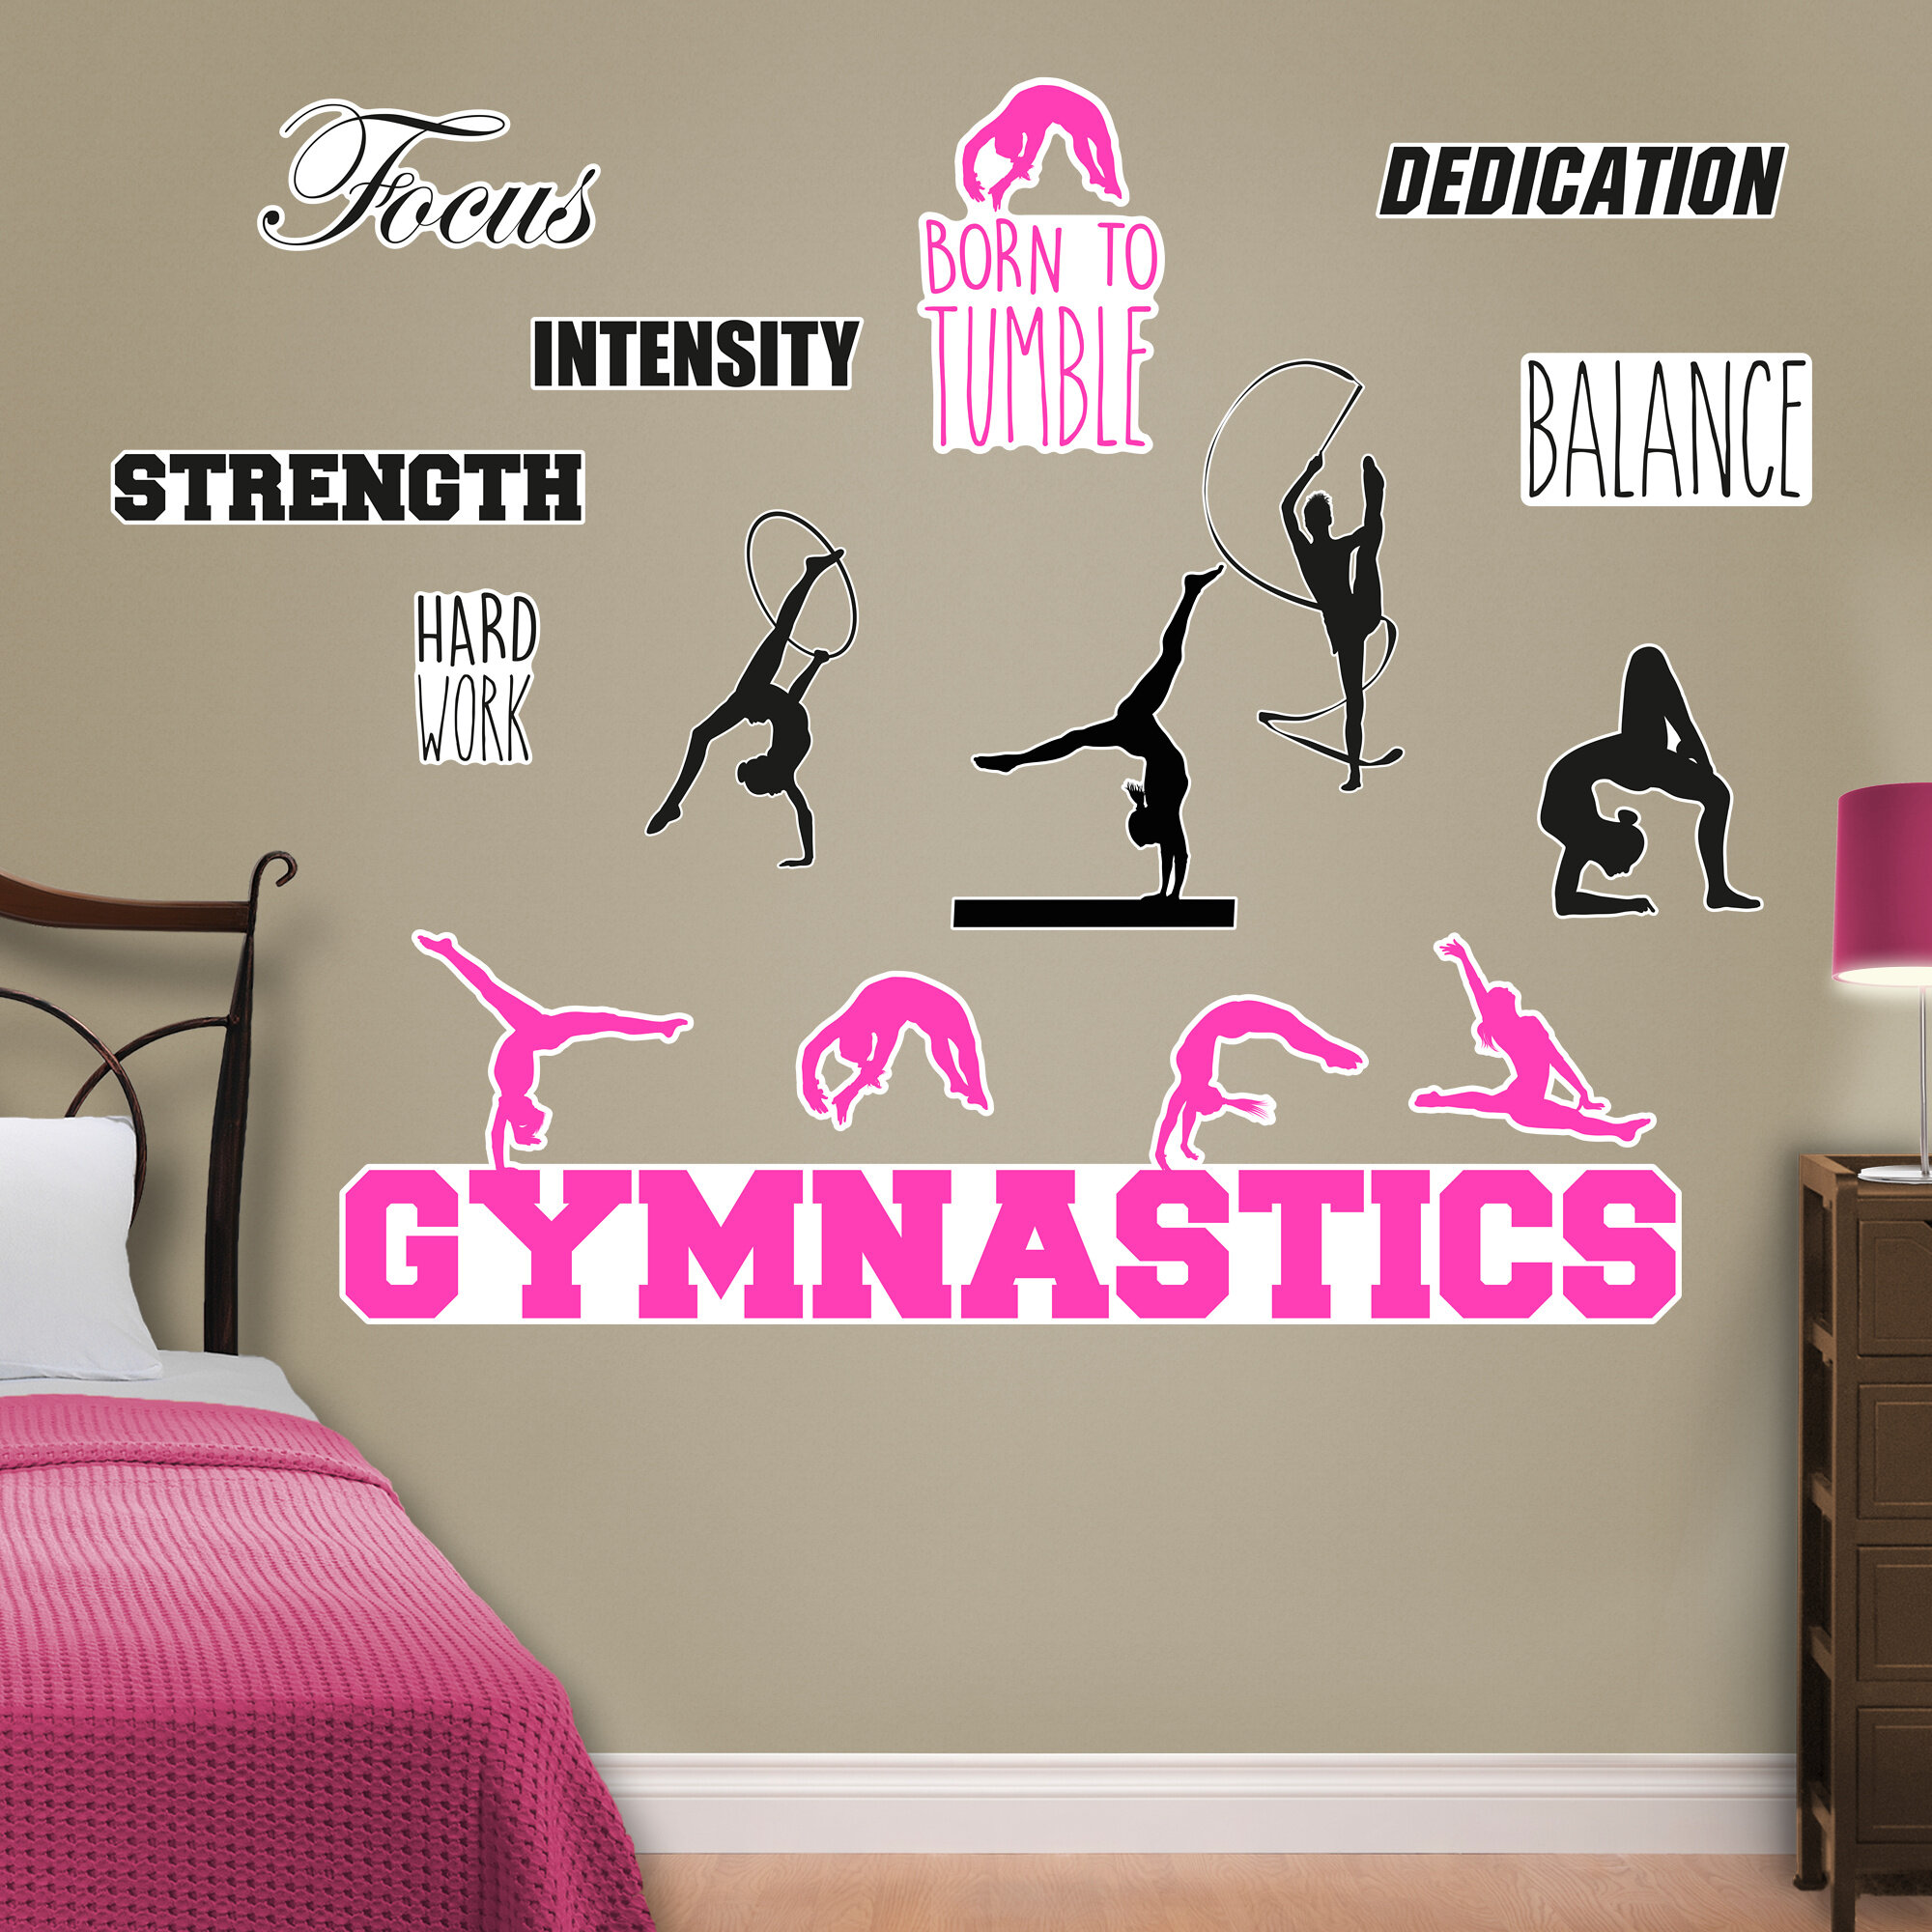 Fathead Gymnastics Peel And Stick Wall Decal U0026 Reviews | Wayfair